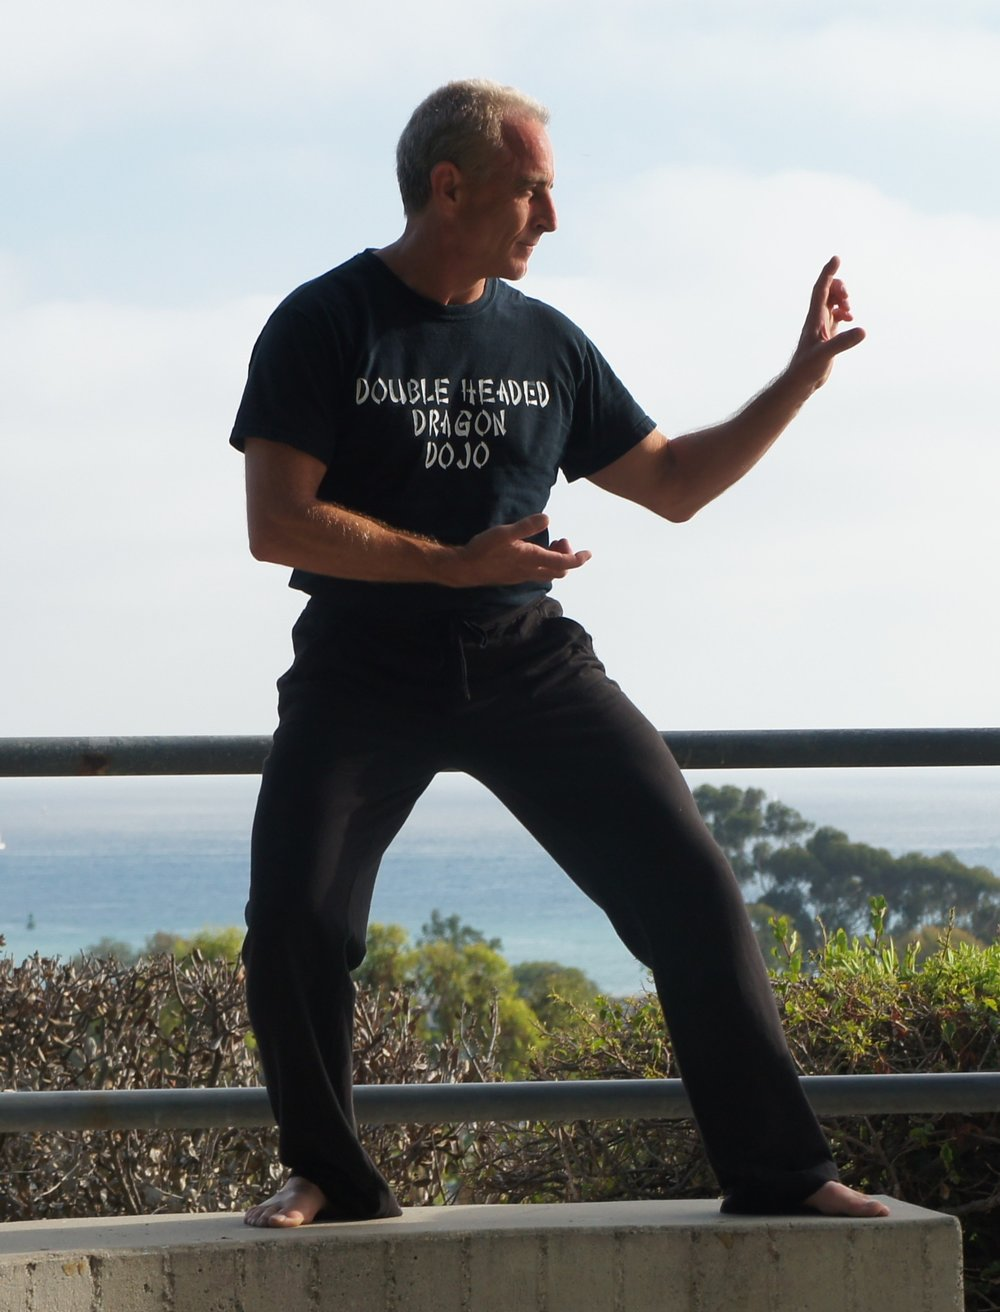 Bob Linzy   An experienced and passionate instructor in Tai Chi & Wu Shu, Bob emphasizes that with the proper mindset and energy, one can heal the body from illness and live a healthy, abundant life.